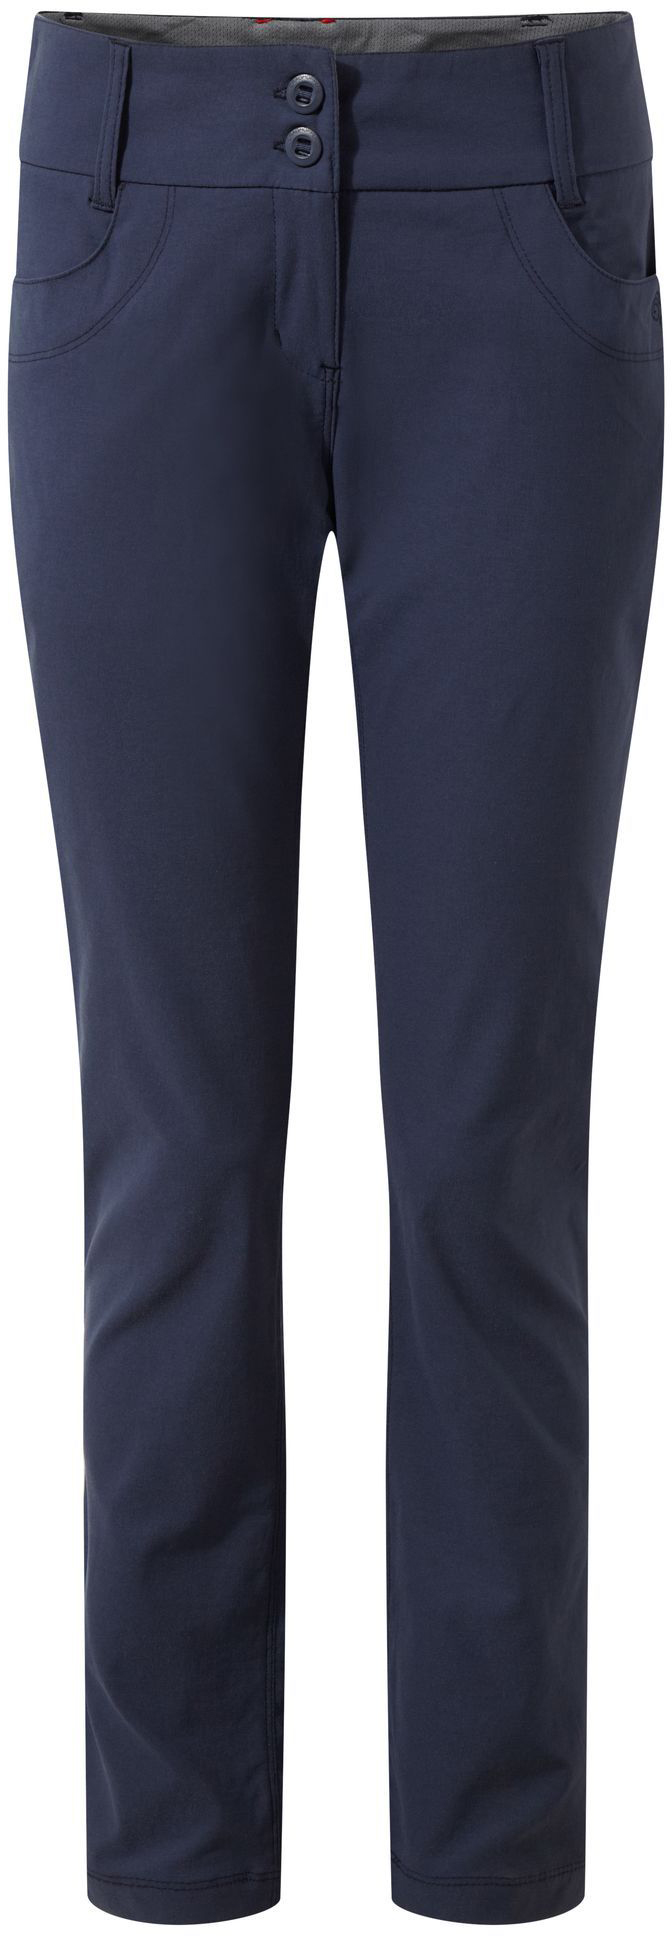 Craghoppers Women's NosiLife Clara Pant | Trousers